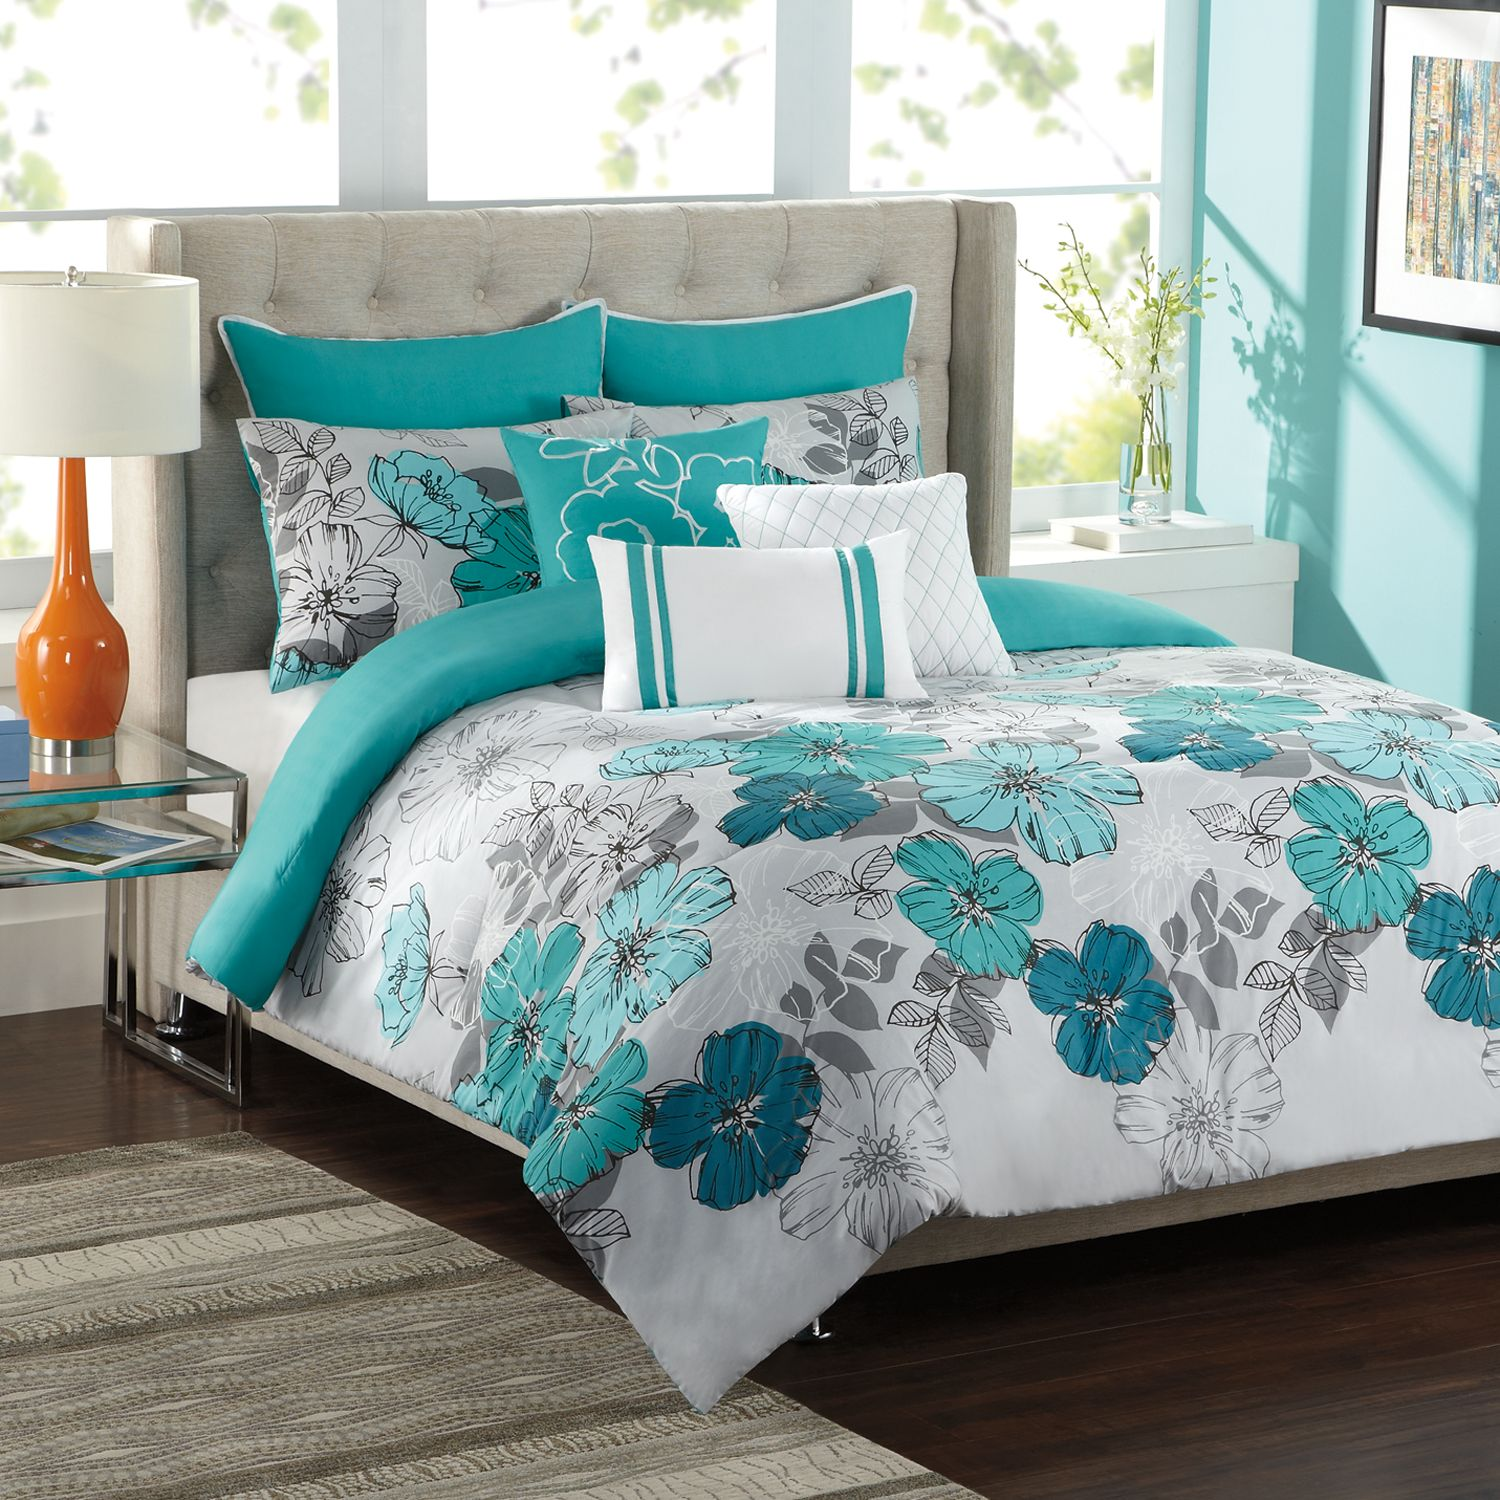 ks studio clara 8 pc comforter set full queen